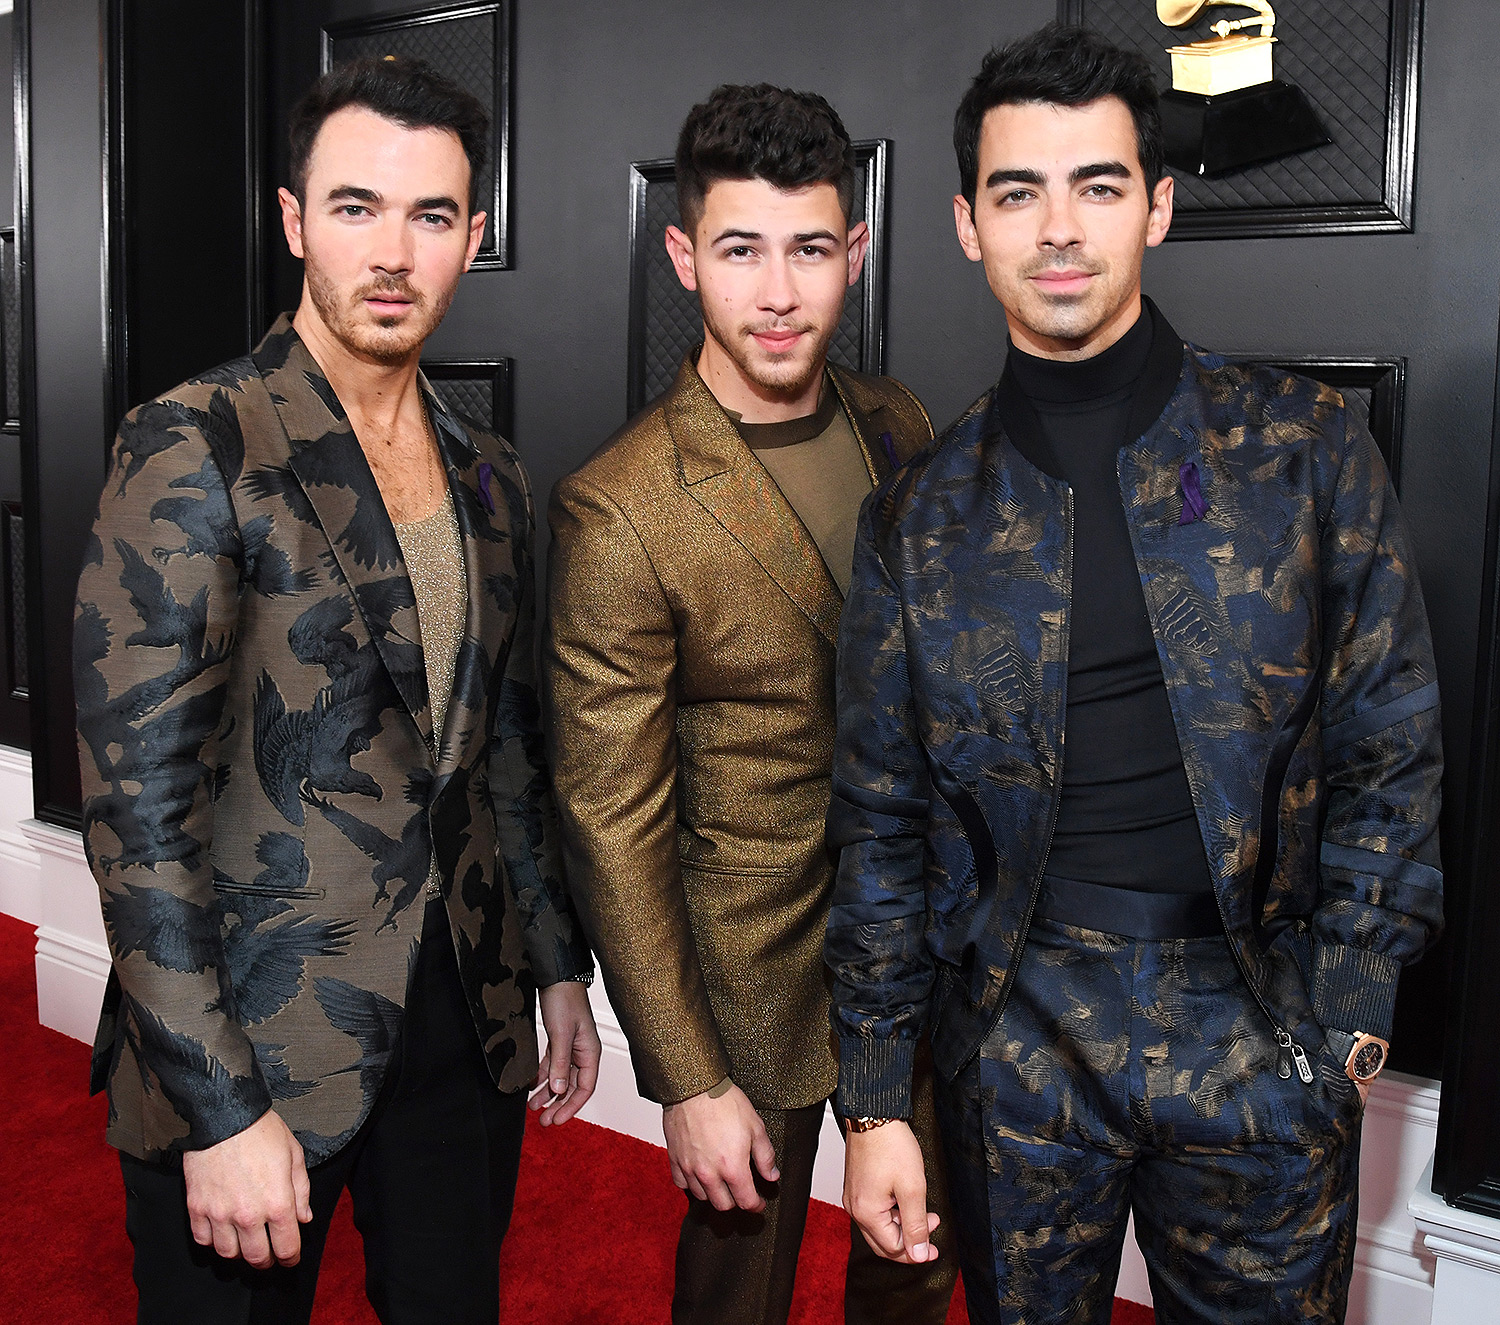 Kevin Jonas, Nick Jonas, and Joe Jonas